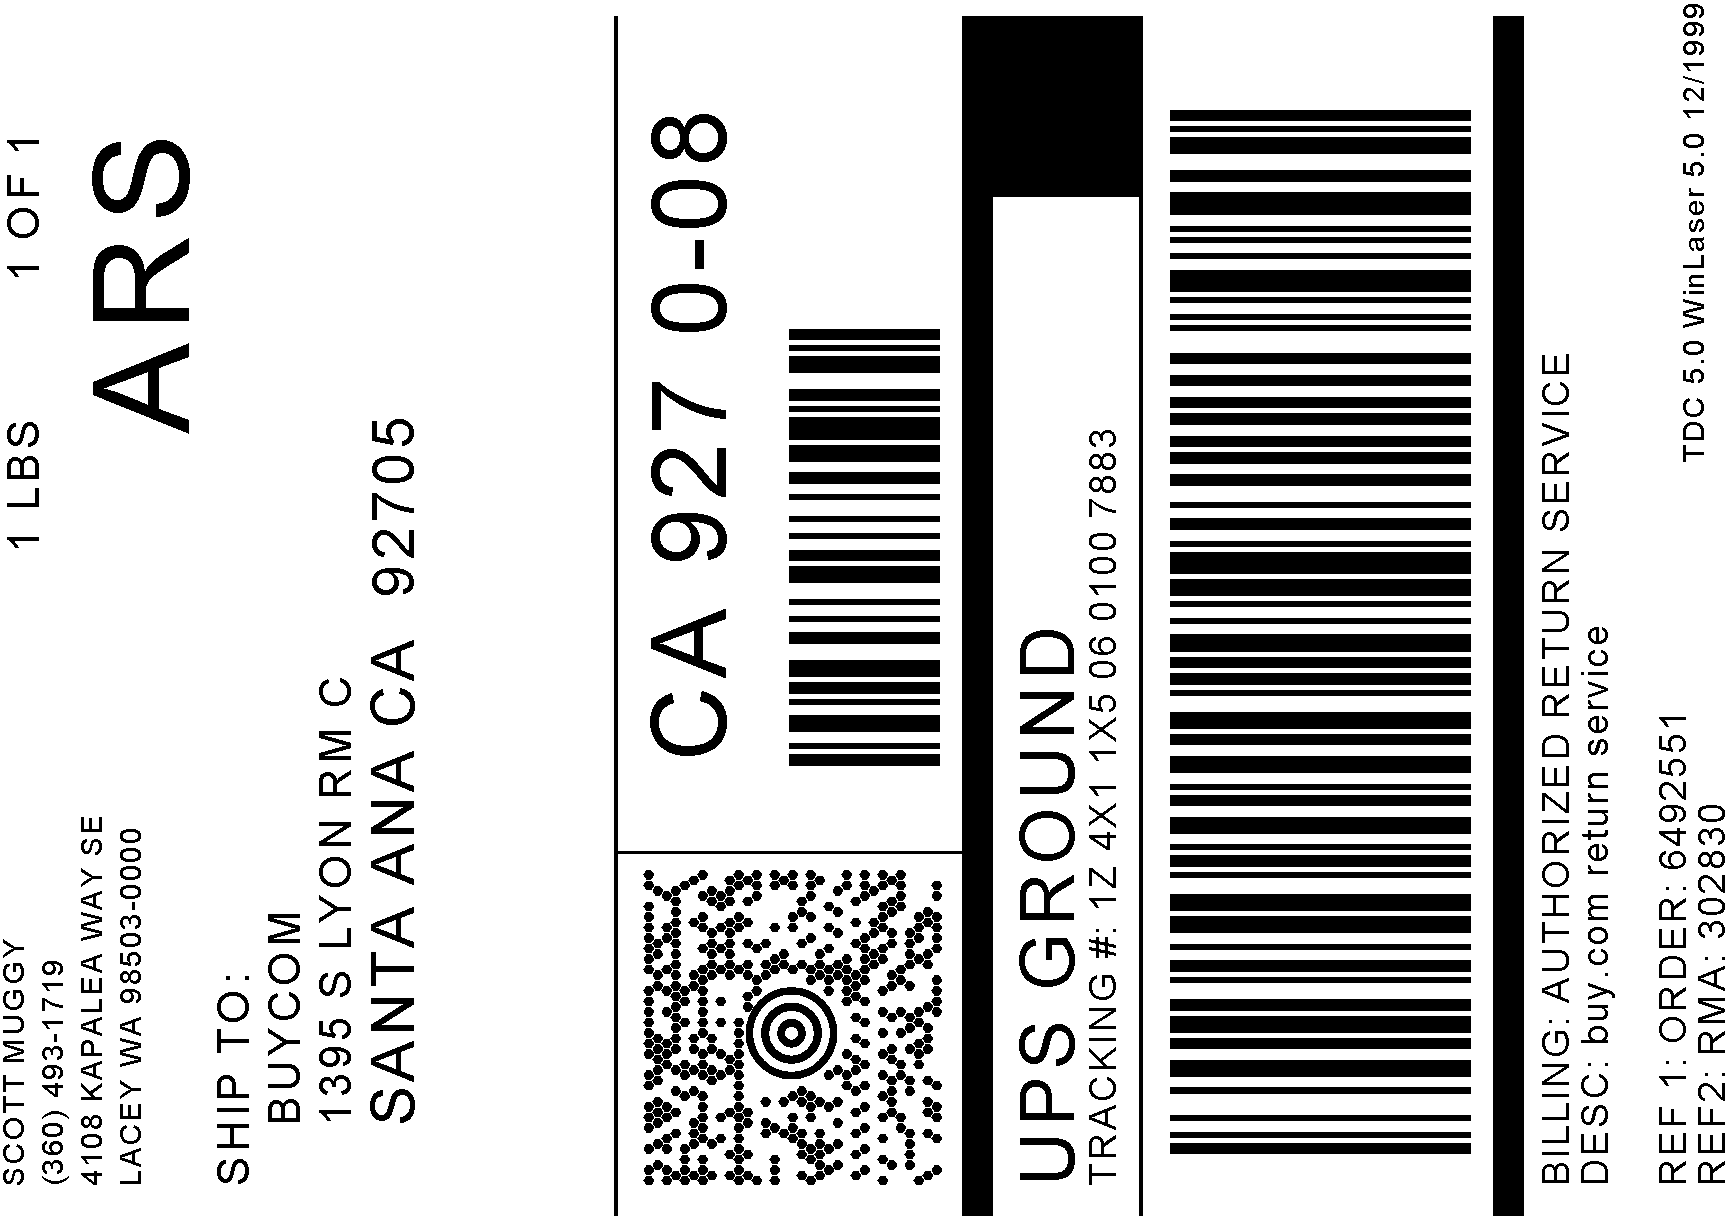 Label for How to send a shipping label to someone